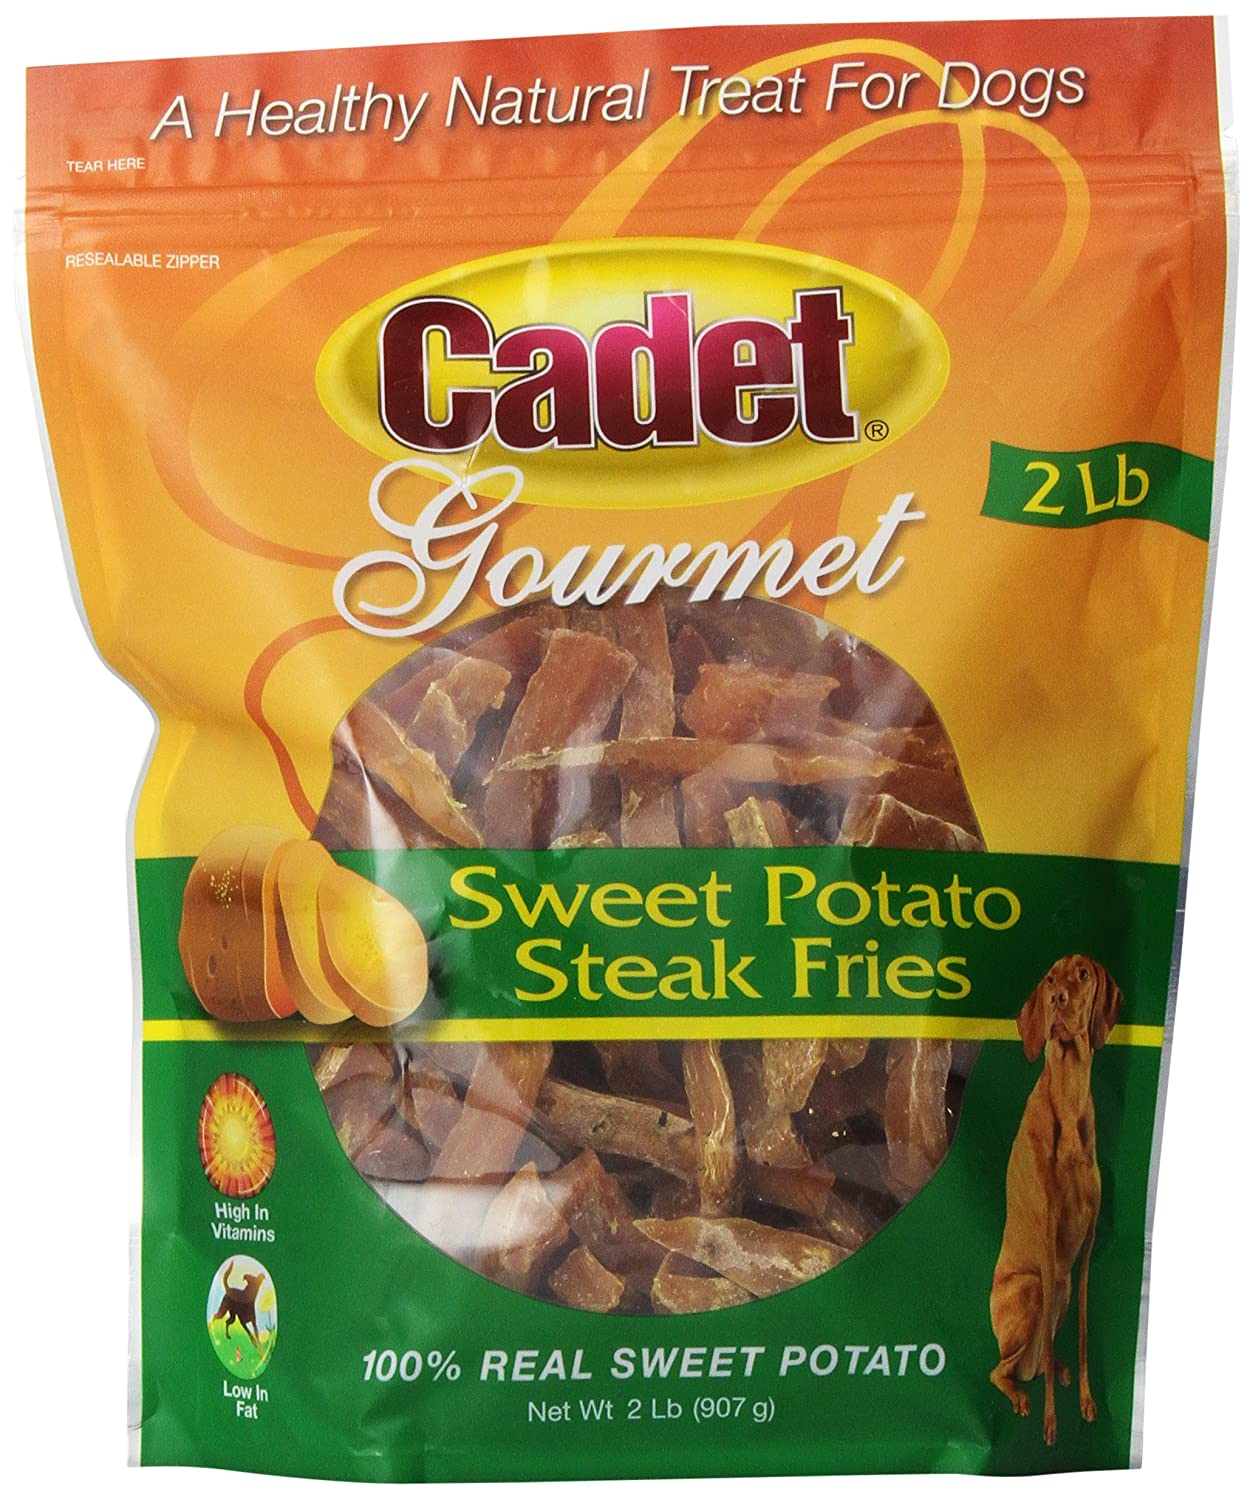 Sweet Potato Steak Fries gourmet dog treats